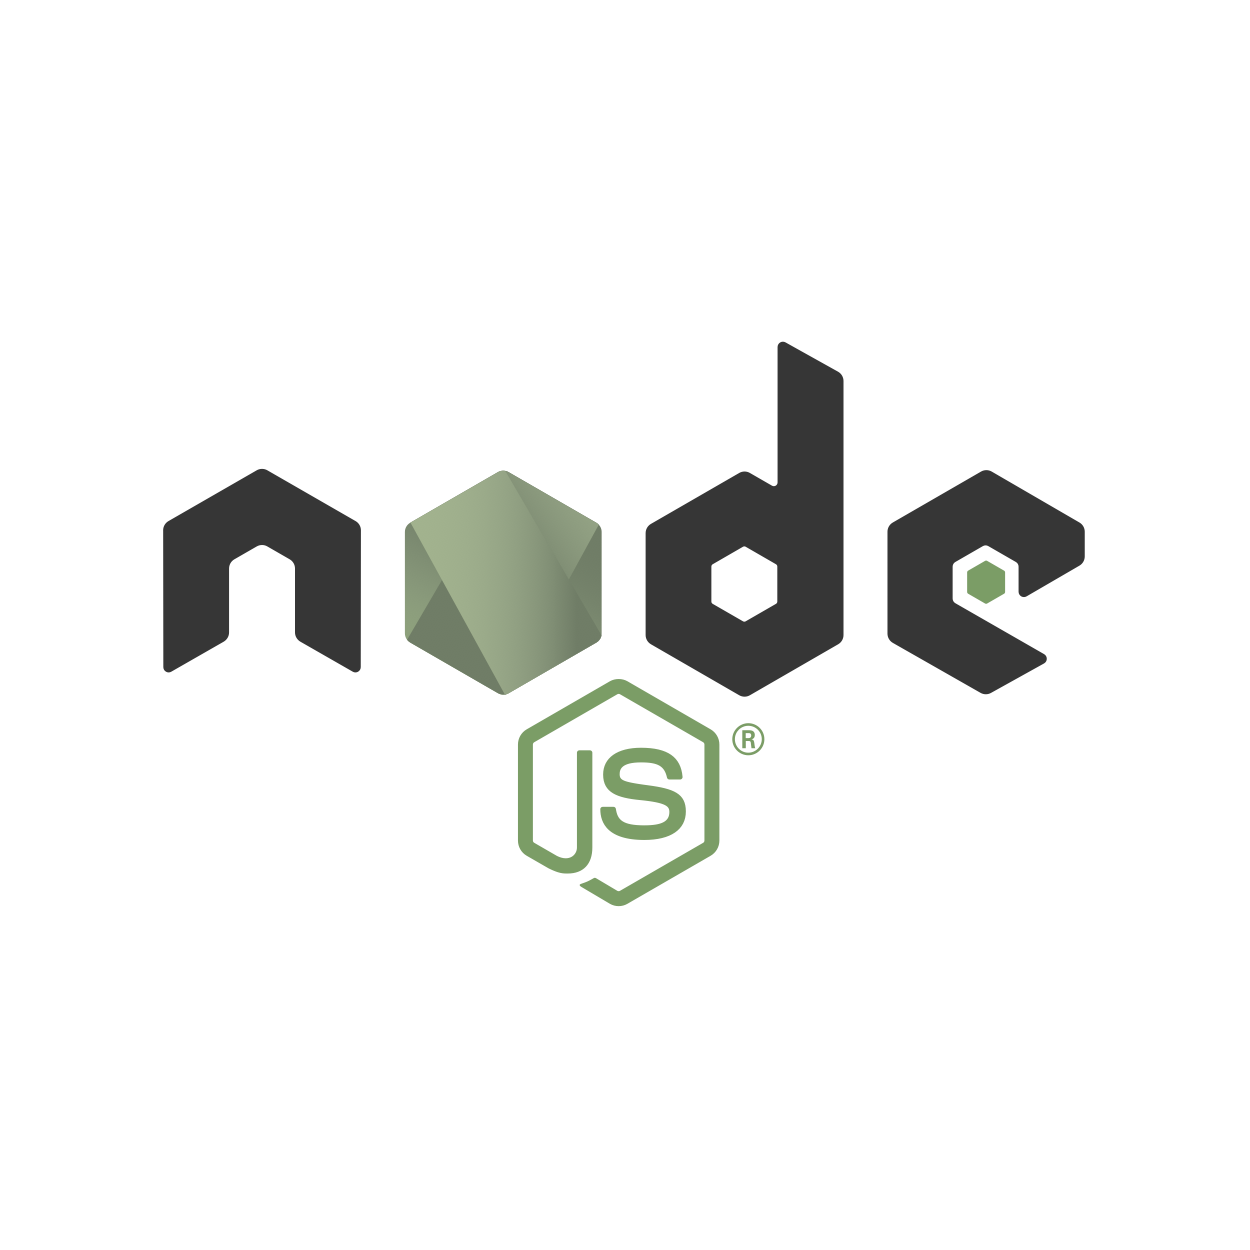 Using Node.js? The OpenJS Foundation would like to hear your feedback